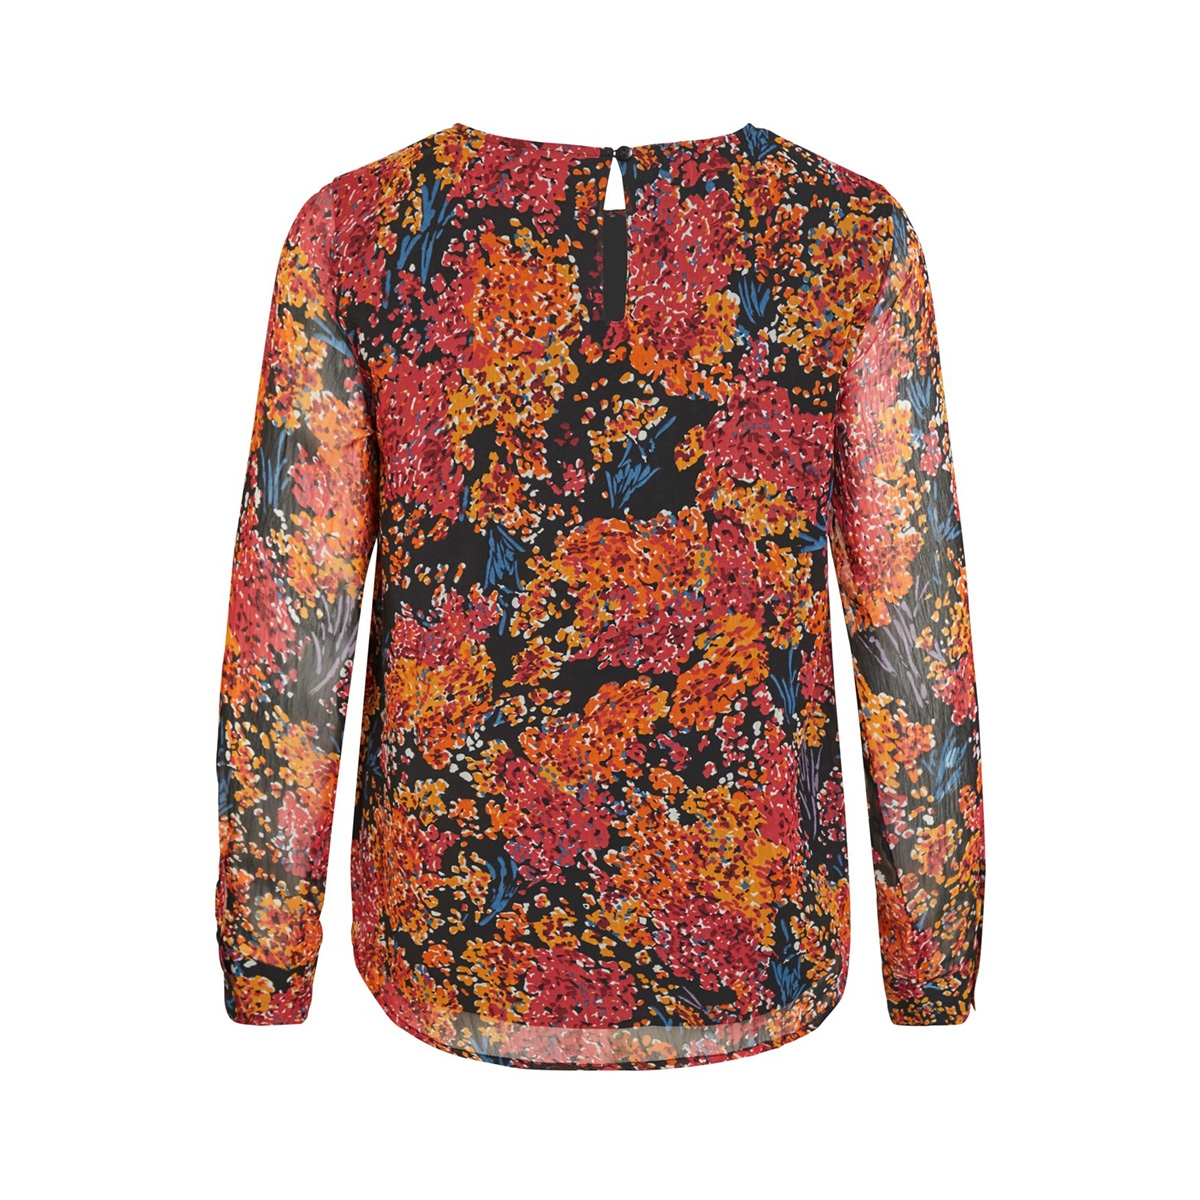 objelva l/s top 106 div 23031913 object blouse black/autumn flower